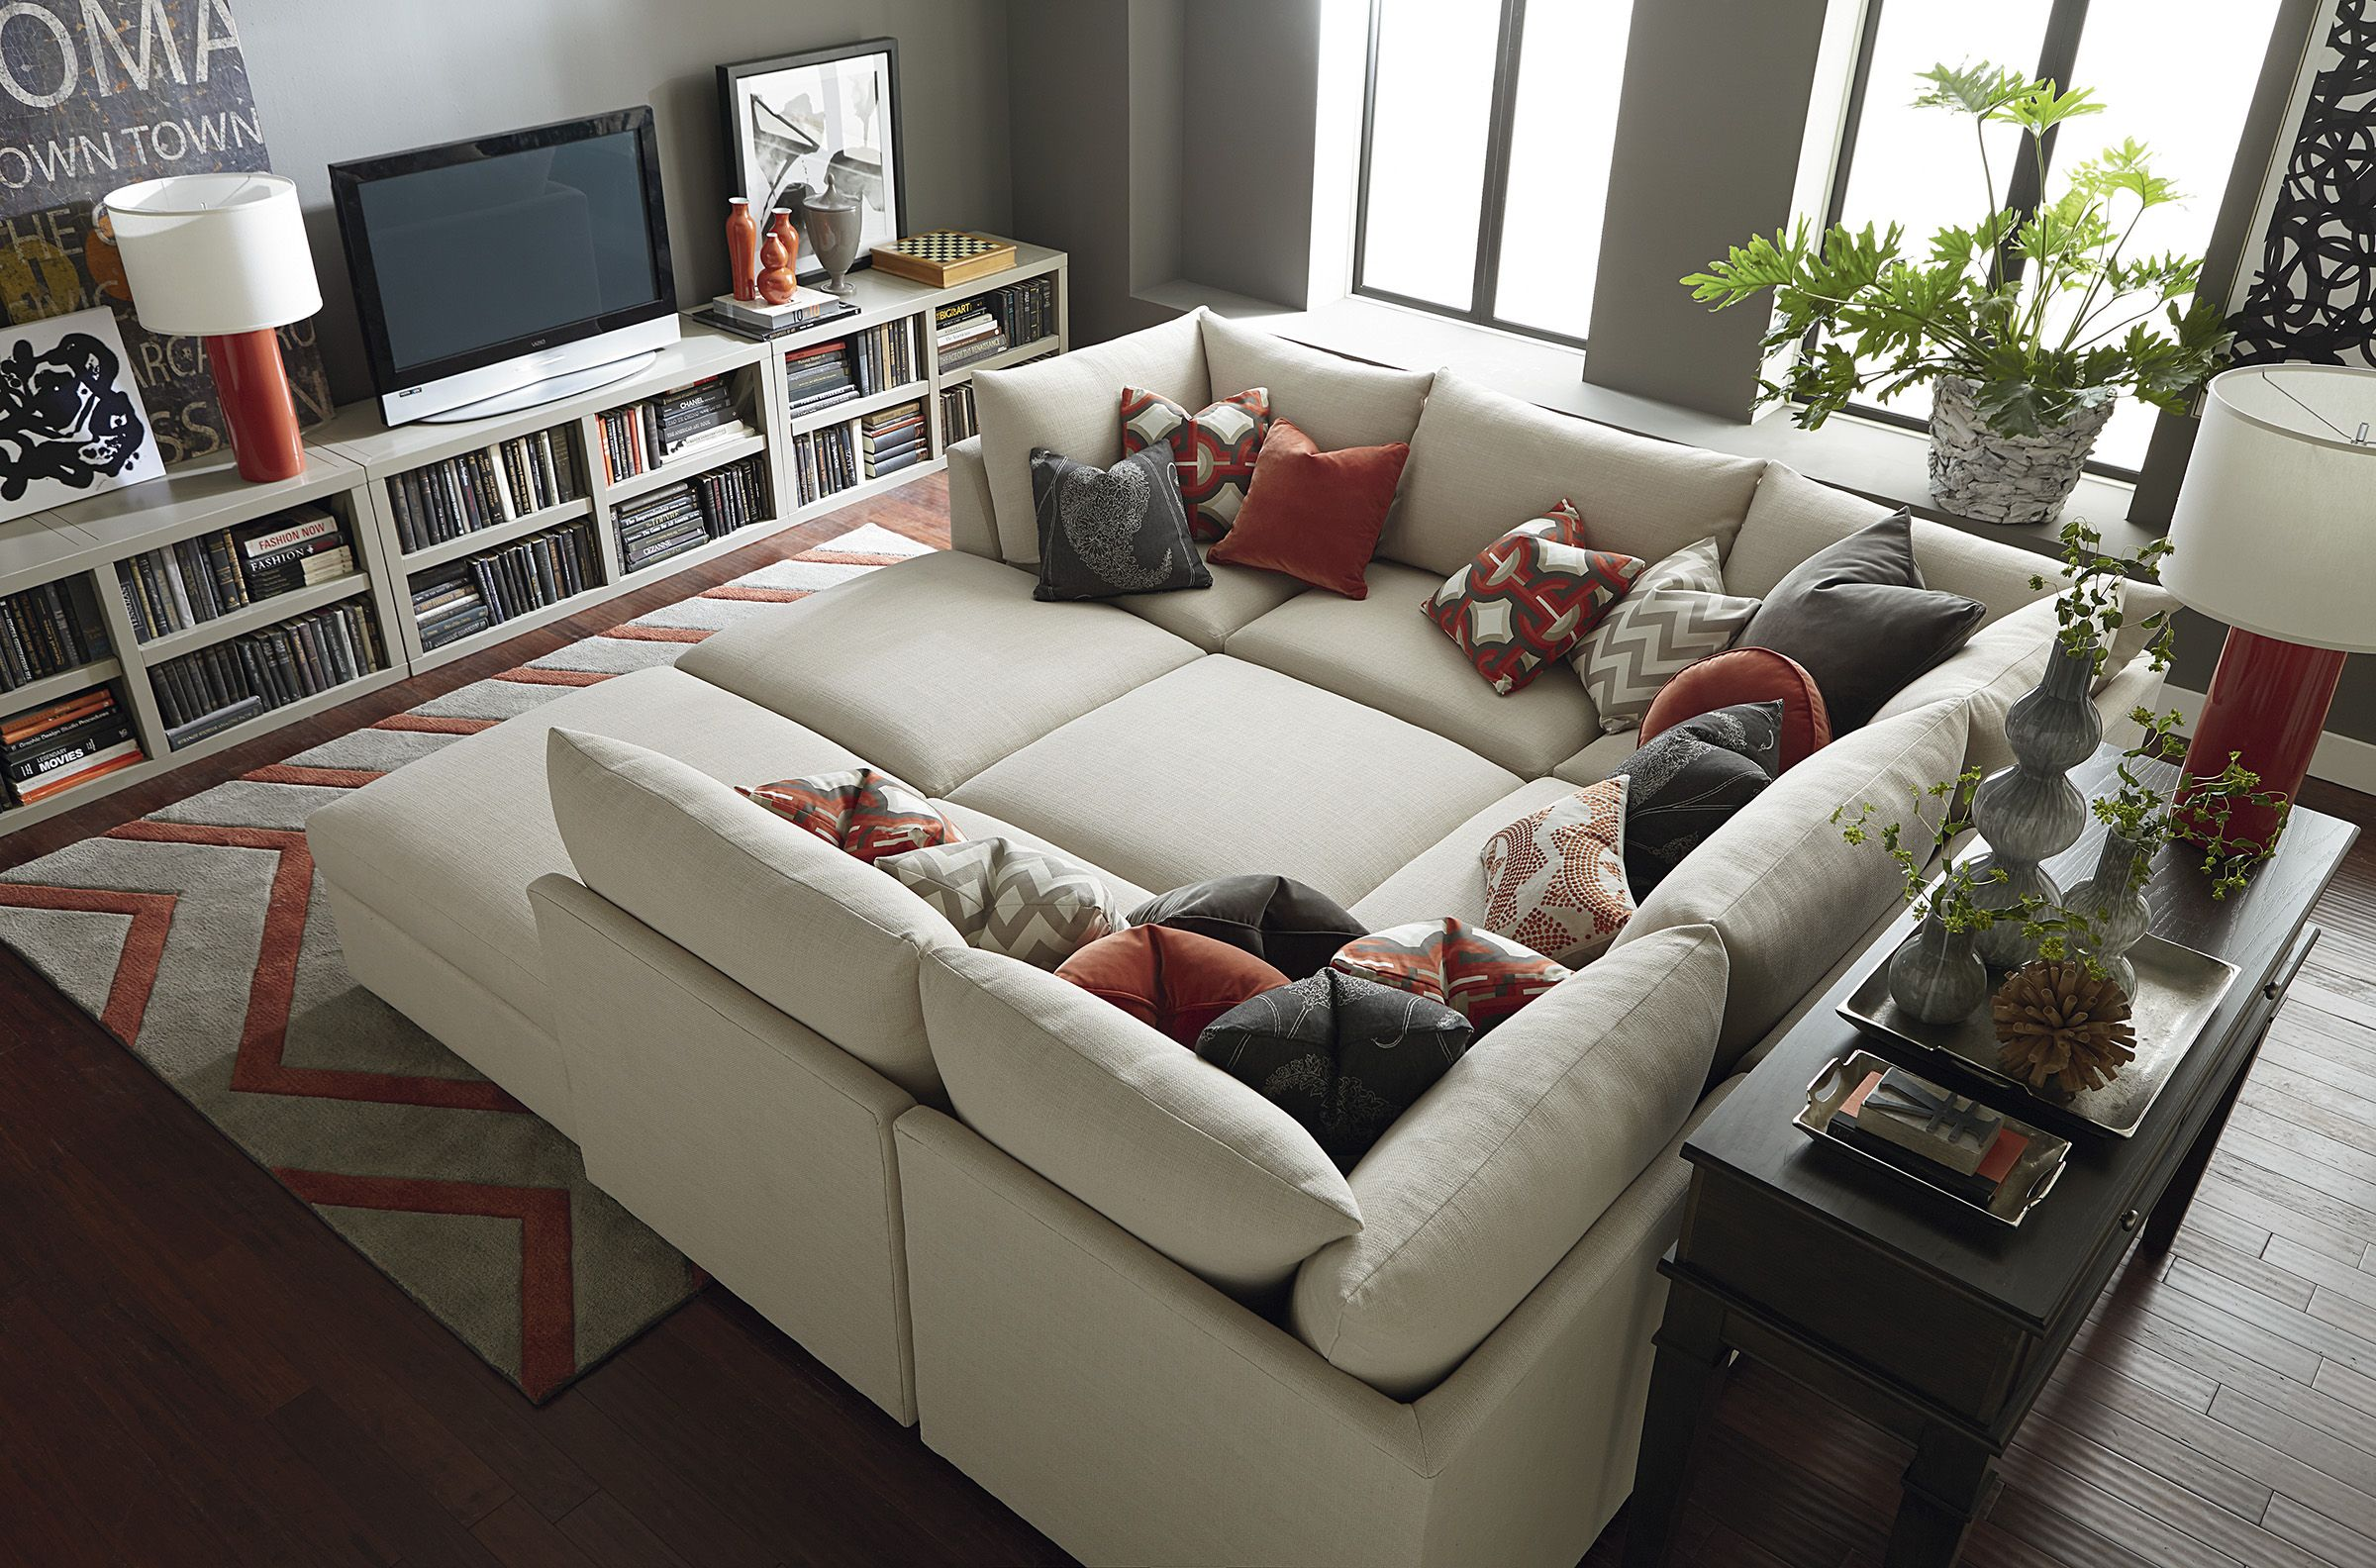 Beckham Pit Sectional By Bassett Furniture Customize Your Sectional With Over 1 000 Fabrics Ikea リビングルーム 自宅で 模様替え